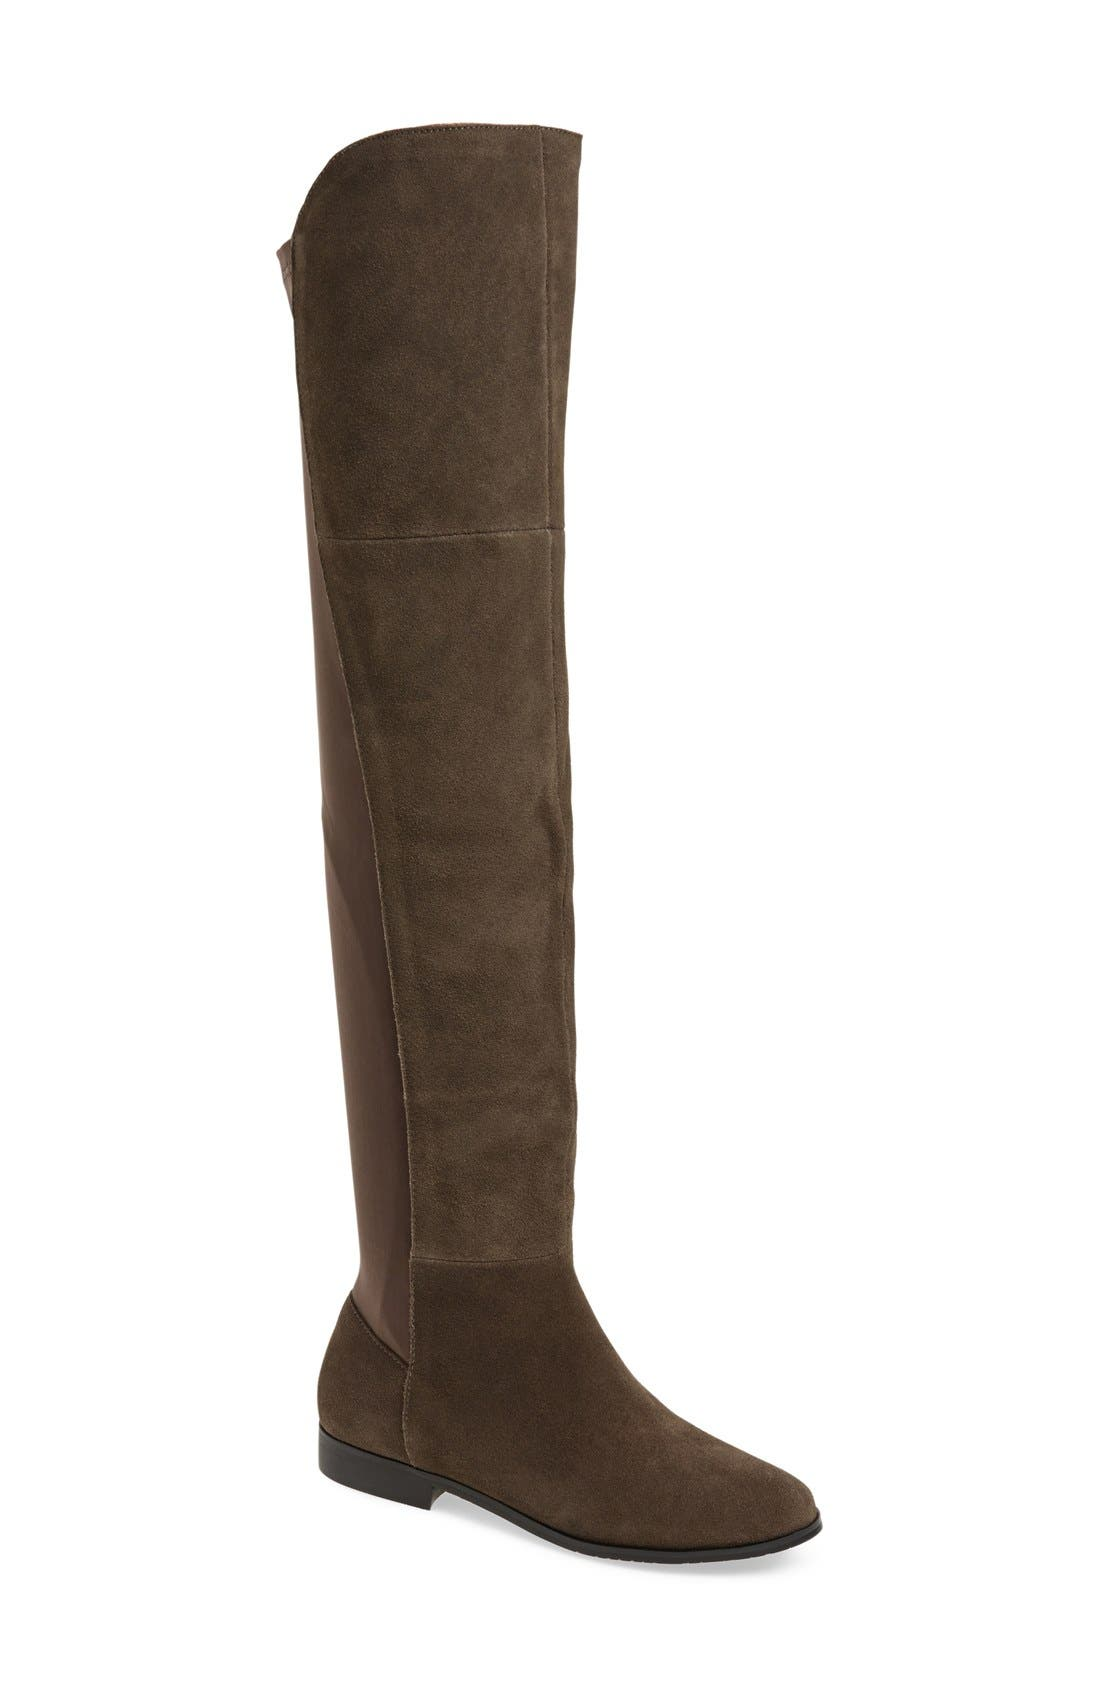 Alternate Image 1 Selected - Chinese Laundry 'Radiance' Over The Knee Boot (Women)